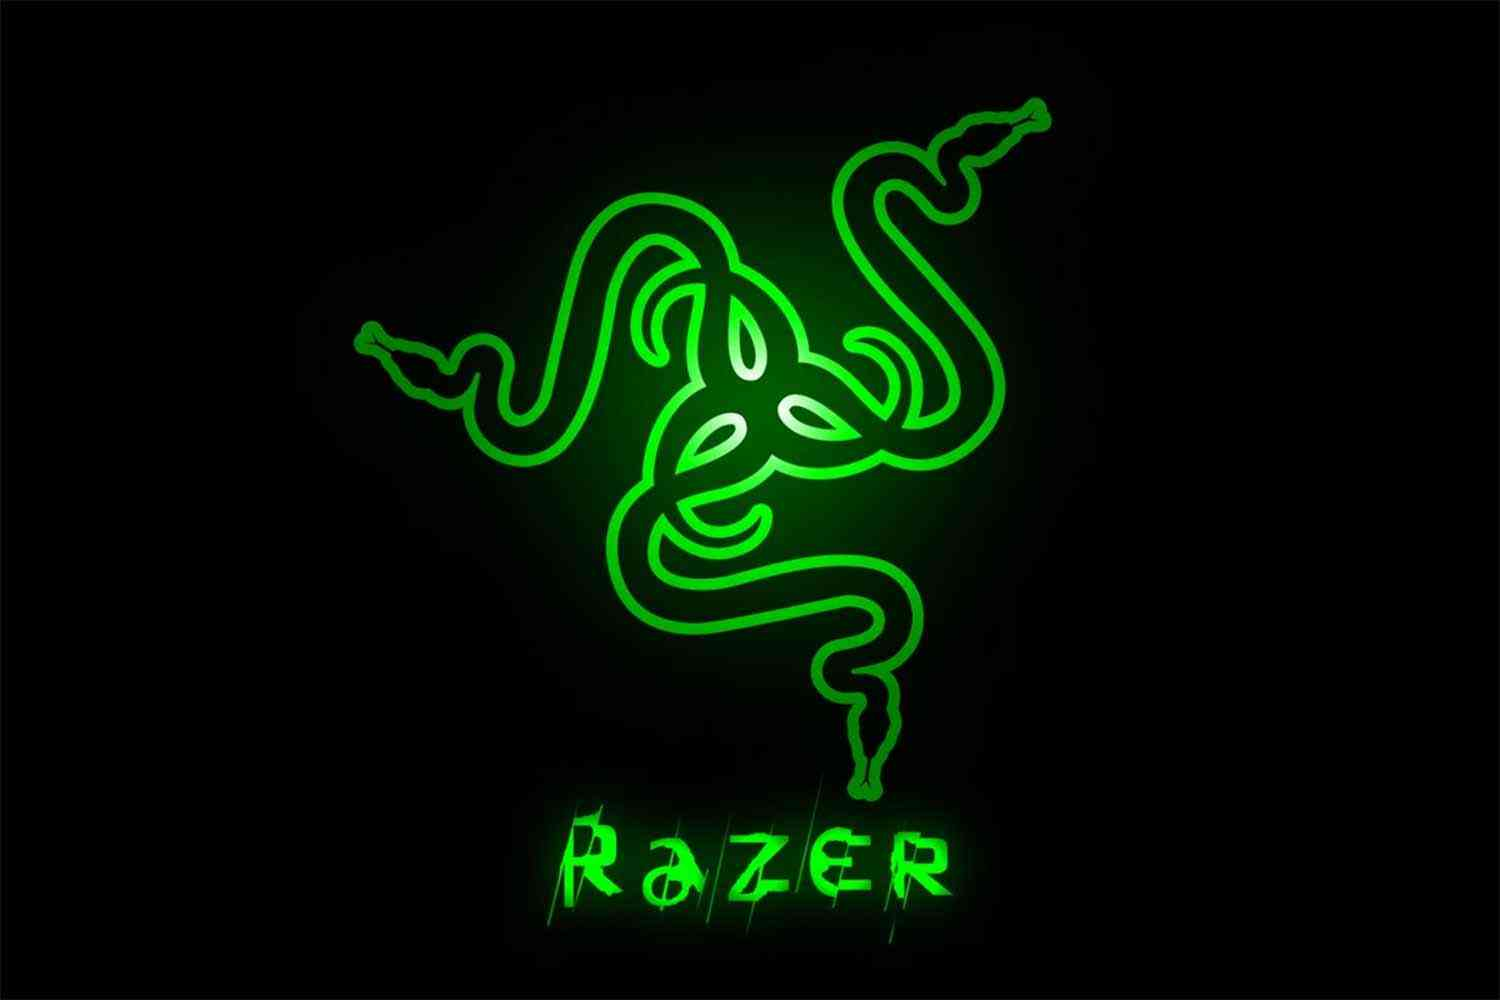 Razer Hands On Osvr Hacker Dev Kit Review Techradar Circuit Wallpaper Digital Art Wallpapers 13785 Logo